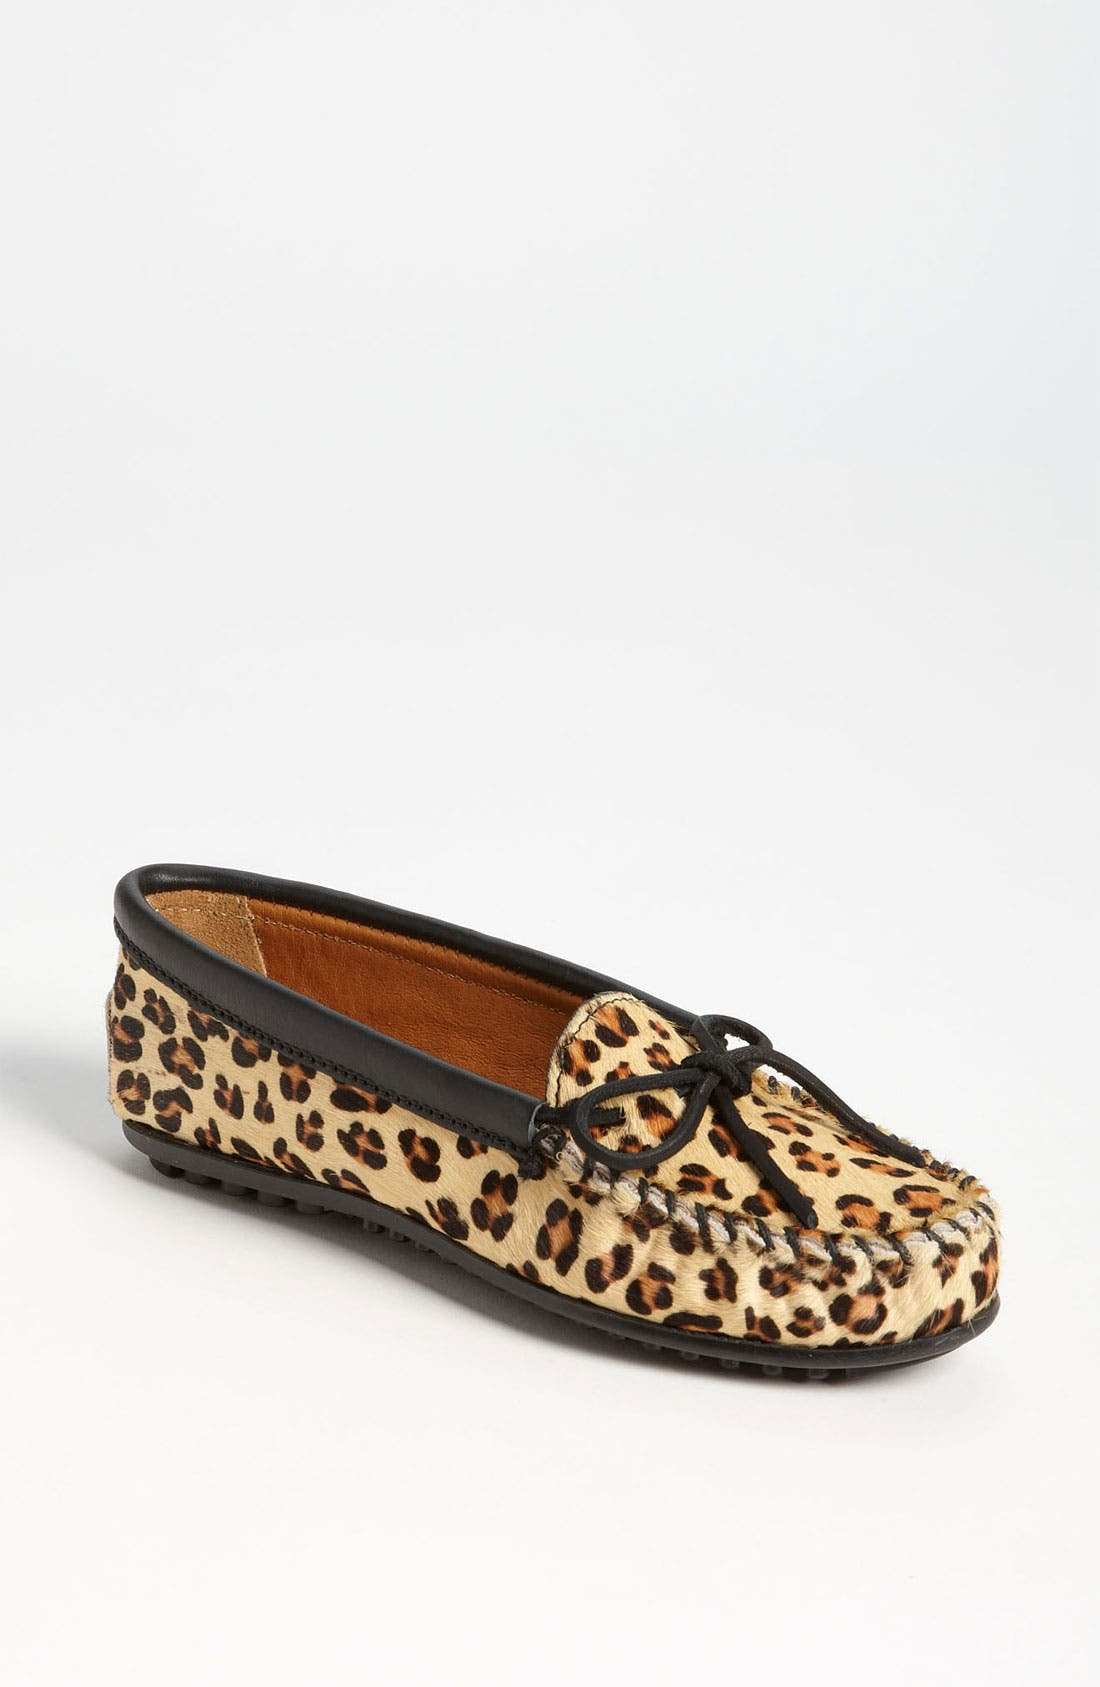 Alternate Image 1 Selected - Minnetonka 'Full Leopard' Moccasin